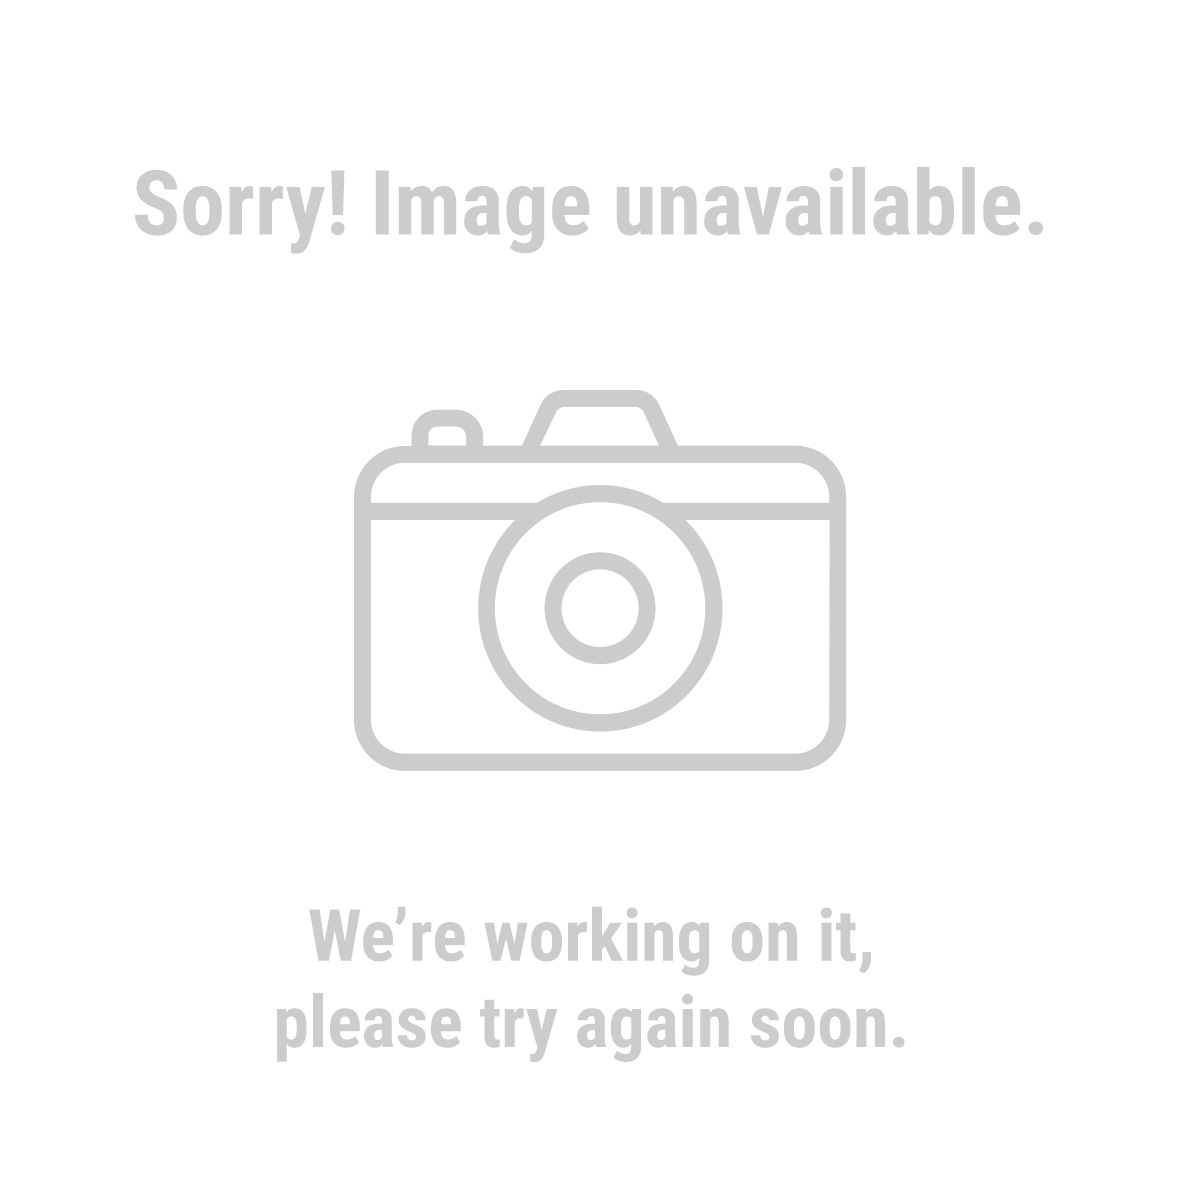 Central-Machinery 62518 36 in. Metal Brake with Stand